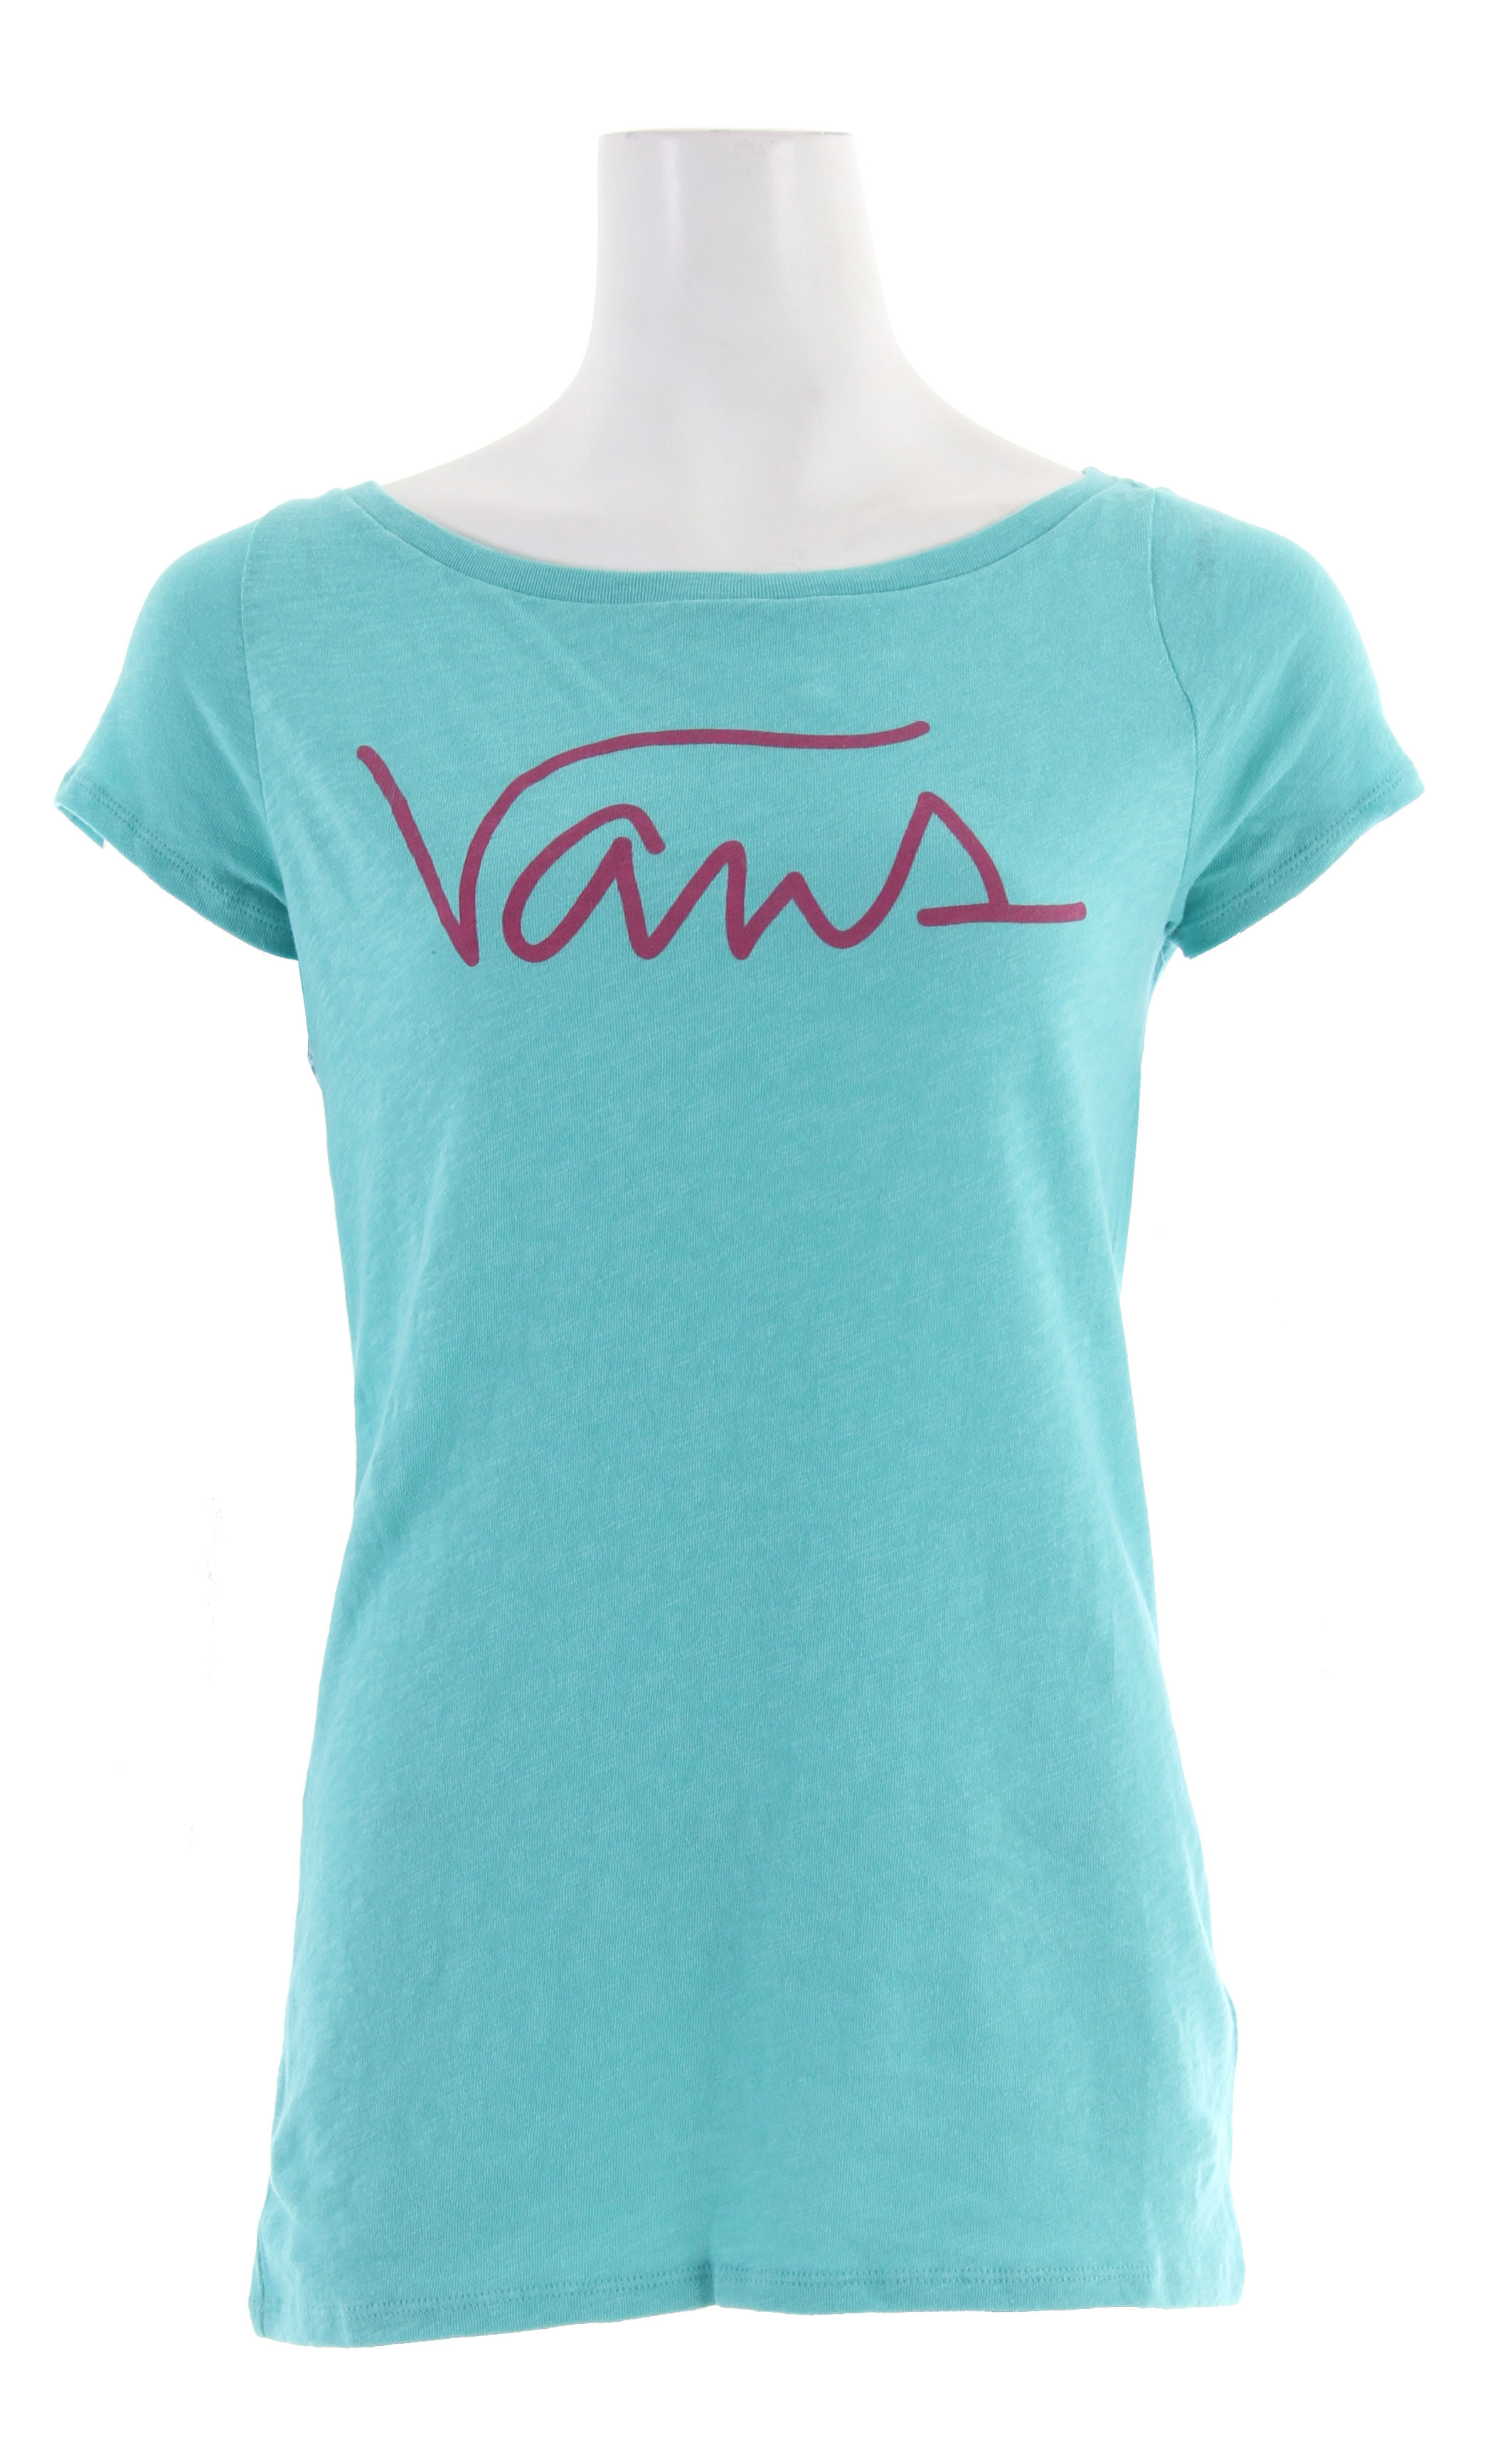 Skateboard For the ladies, are you looking for a fresh, new way to show your pride in your skateboard  The Vans Fresh Take T-Shirt features a new, revamped Vans written in cursive. With short sleeves, this crew neck shirt was designed to make you look good. Show your pride in how you board with this Vans Fresh Take shirt!Key Features of The Vans Fresh Take T-Shirt:  Regular Fit  Crew Neck  Short Sleeve - $8.95